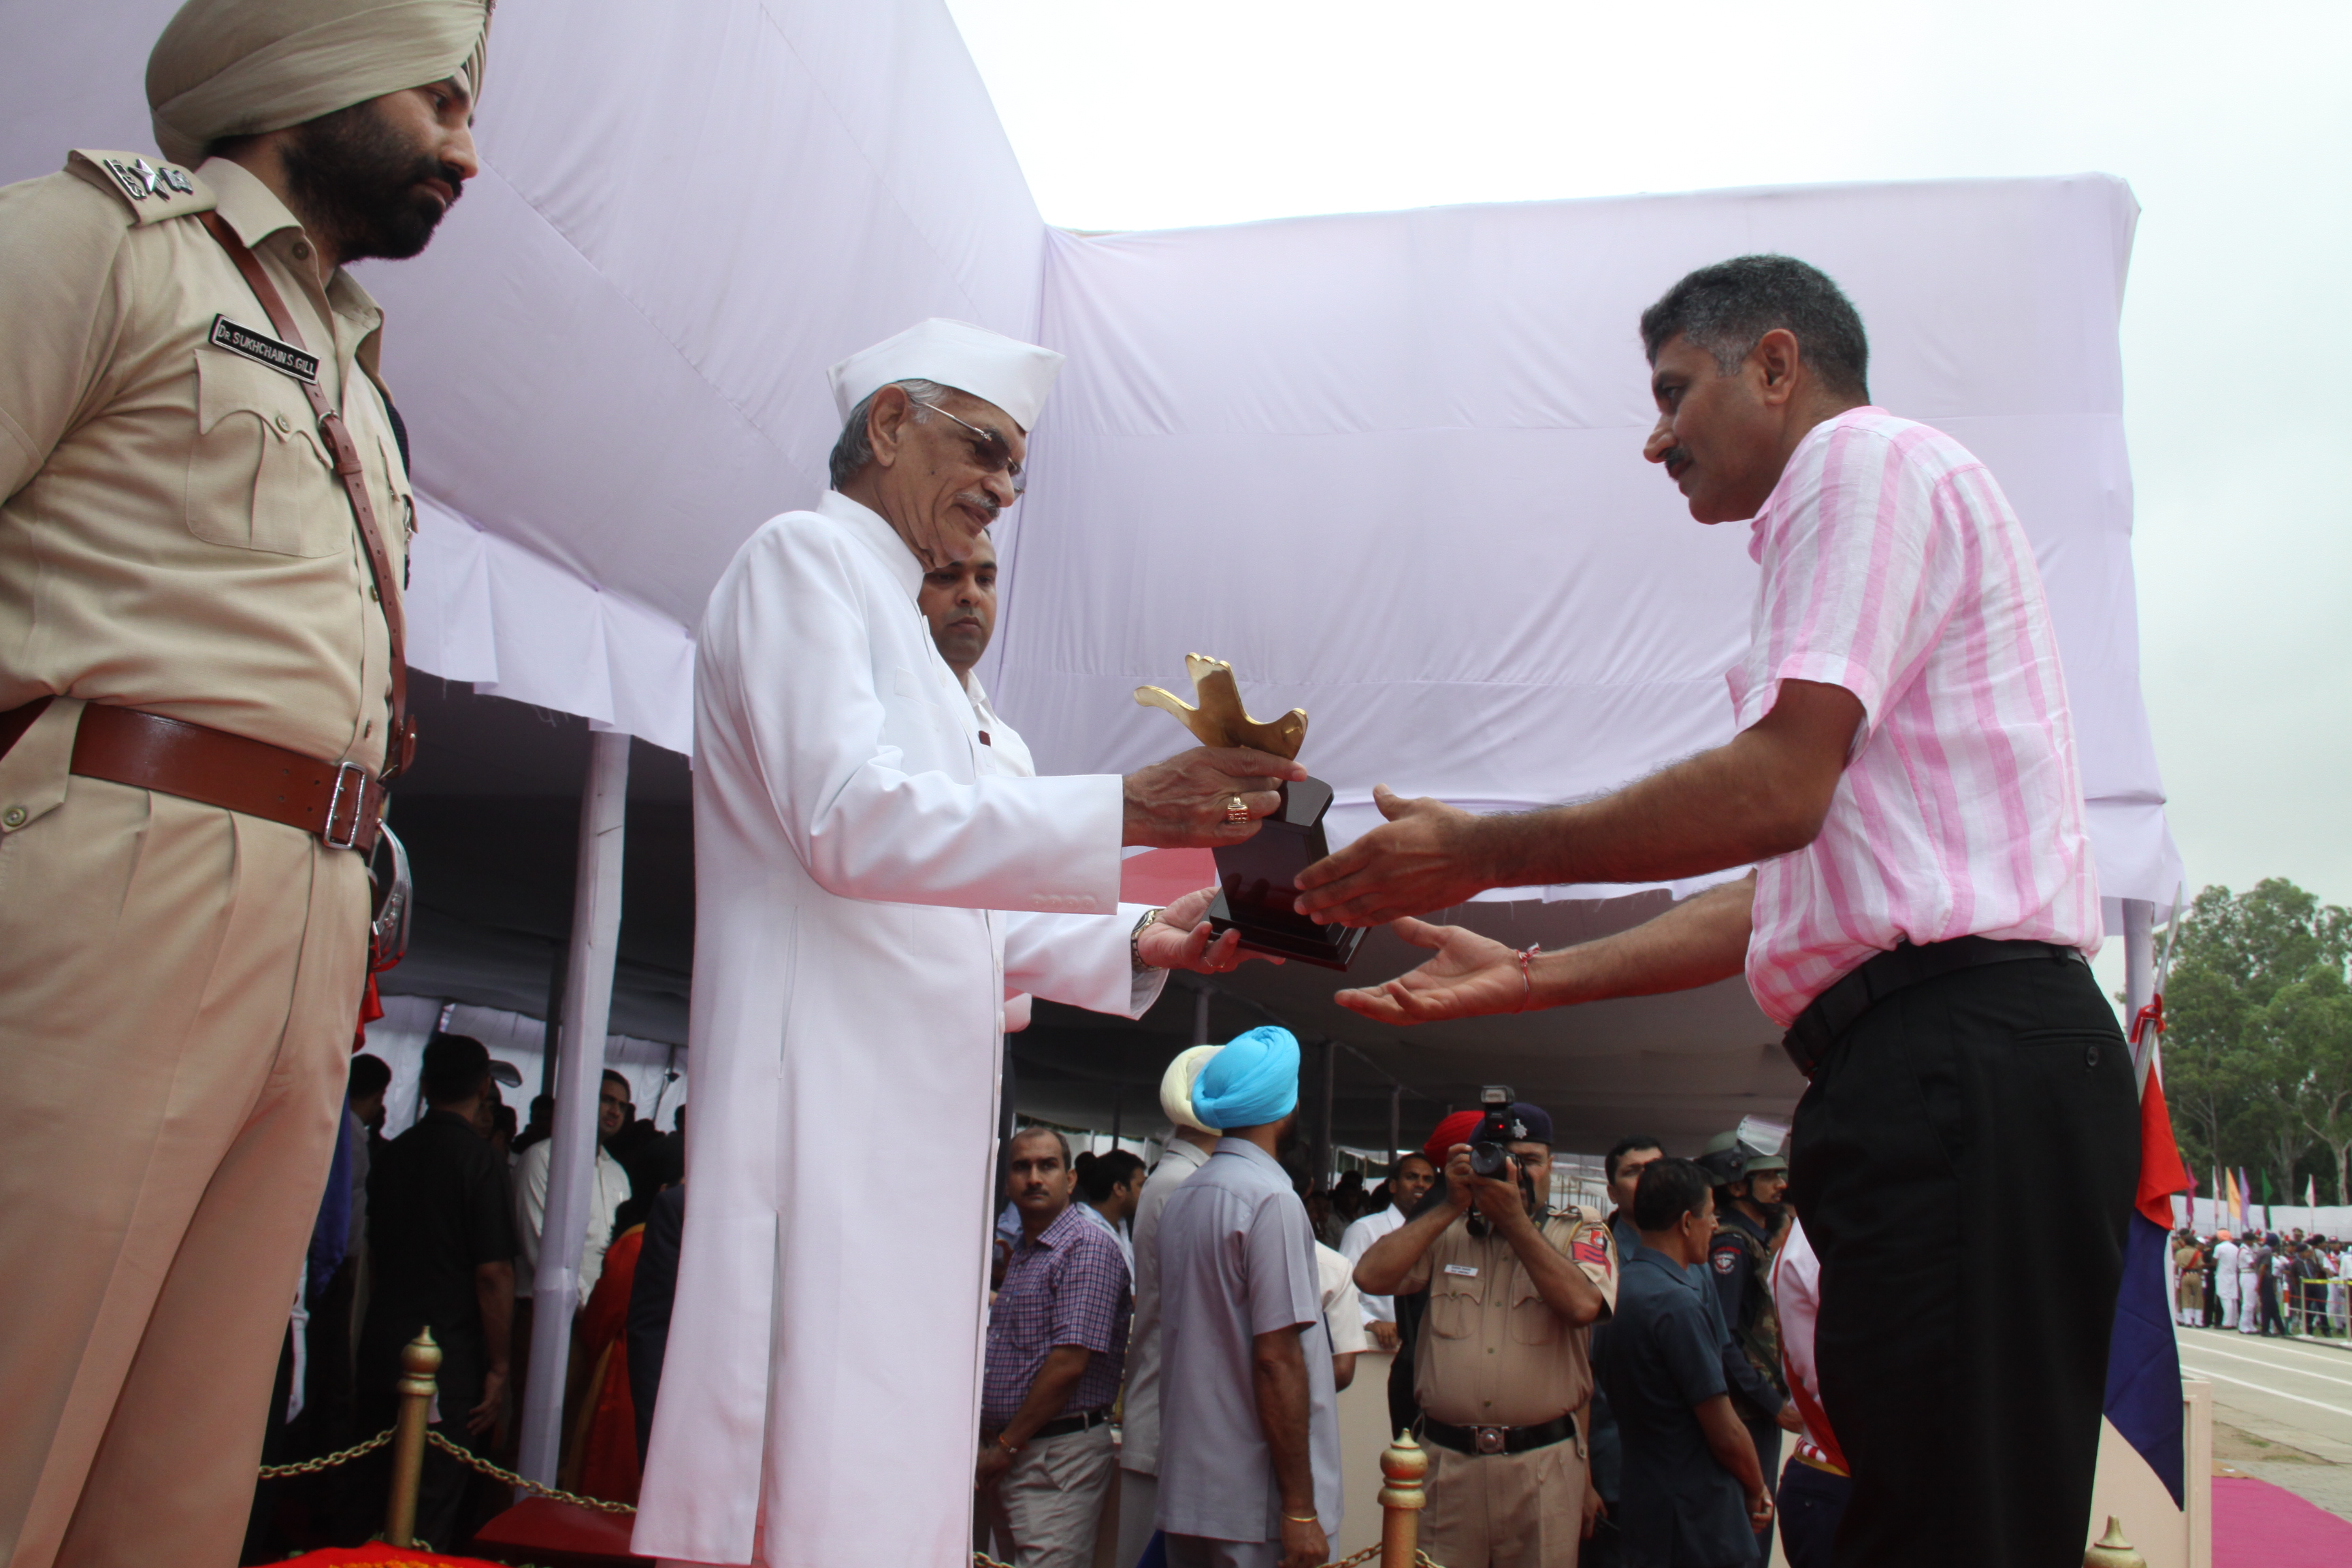 Shamsher Singh Lect.in Maths receving commendation on Independence Day 2014 from Governor of Punjab Shiv Raj Singh Patel